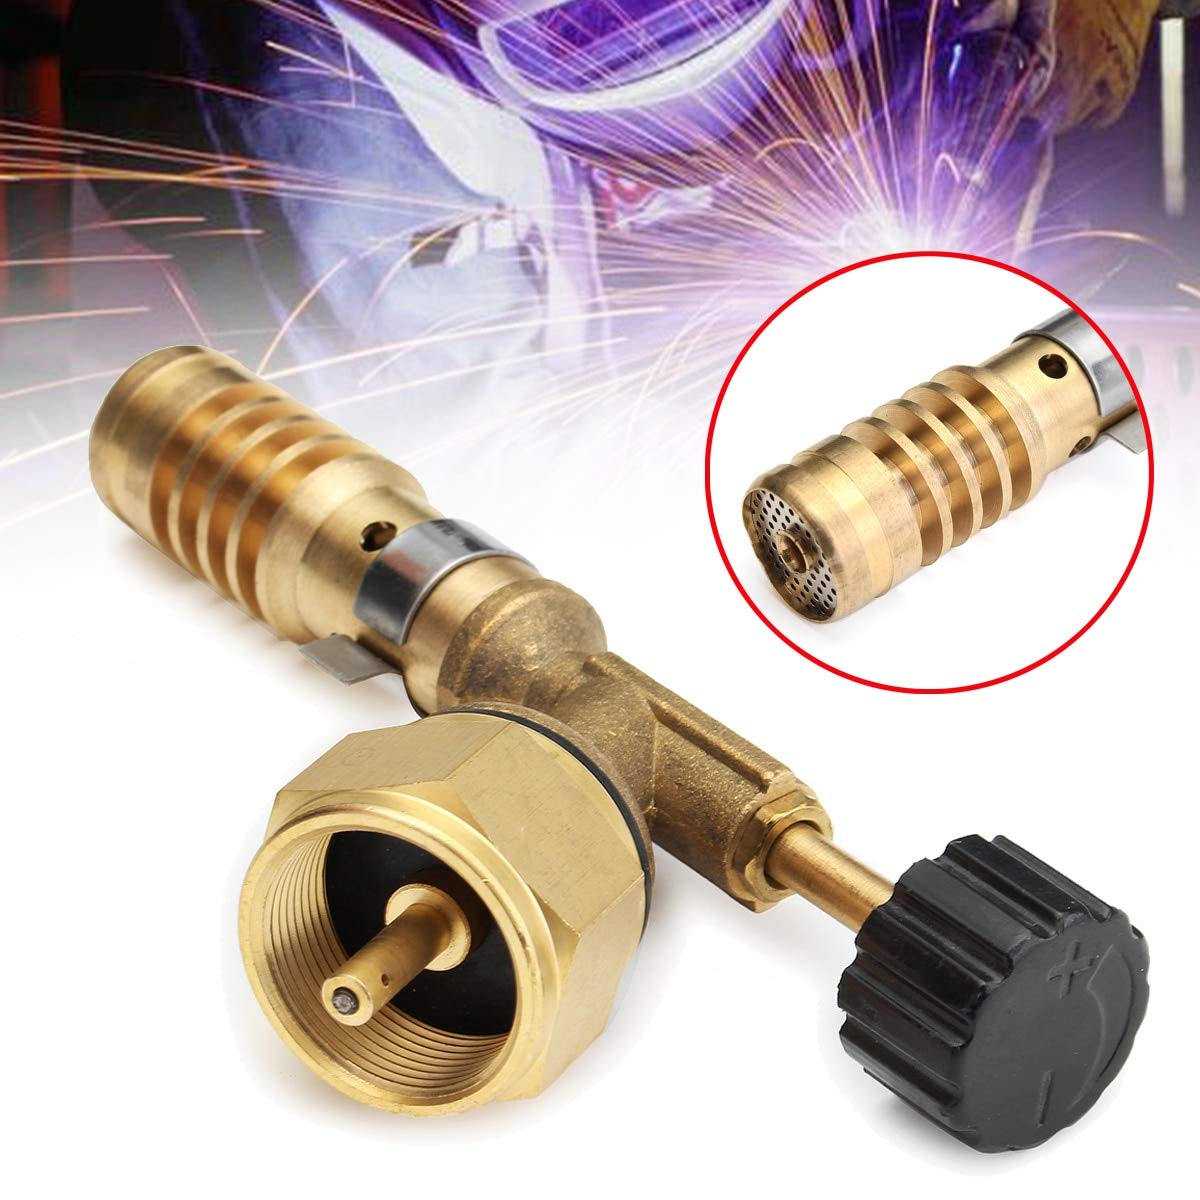 Fevas Copper Aluminum High Temp Gas Turbo Torch Electric Soldering Iron Kit Ignitor Starter Burning Adapter for BBQ